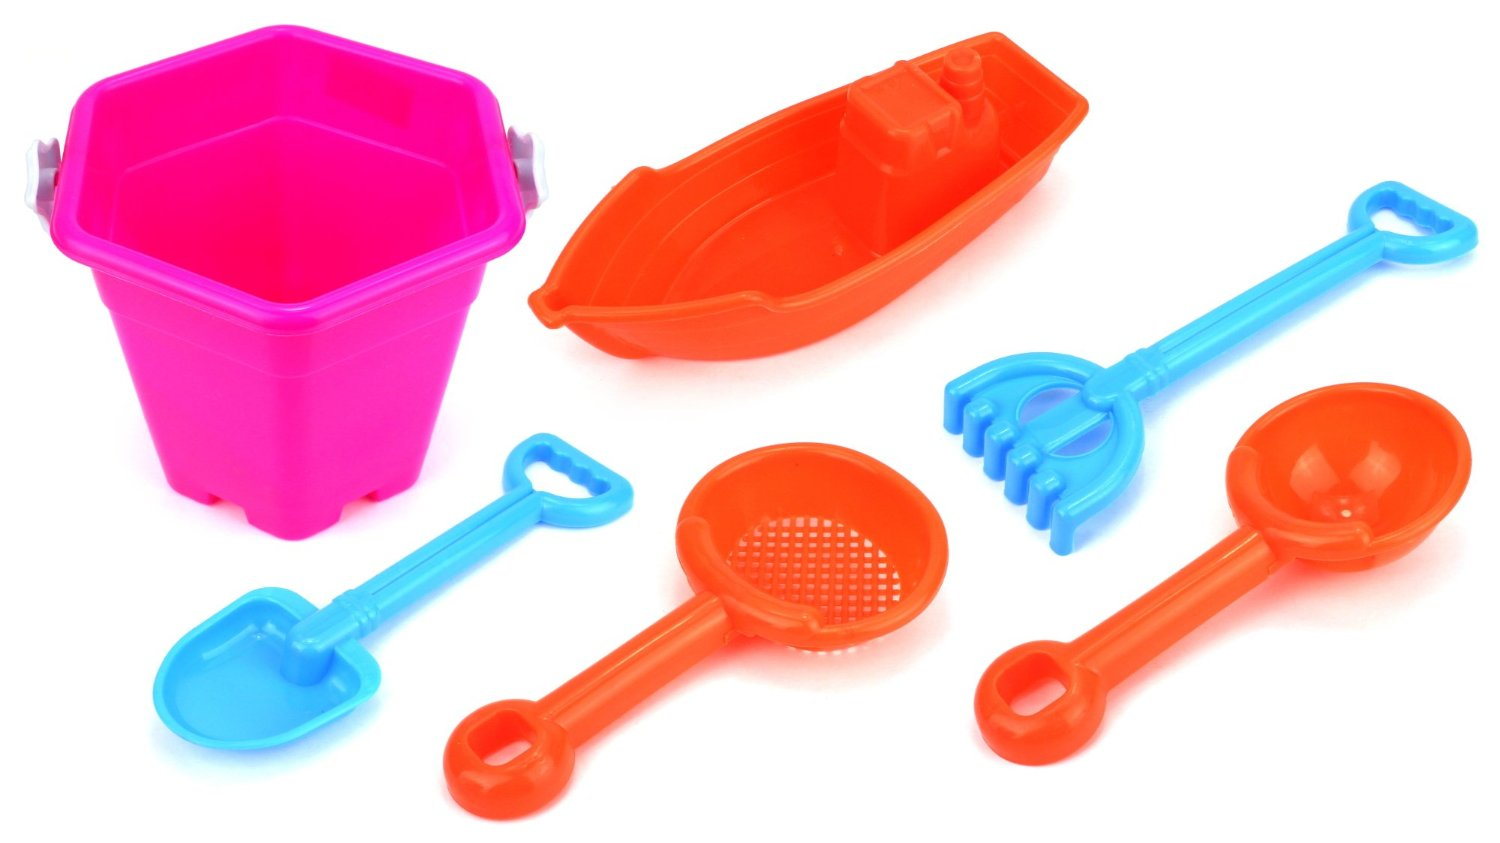 Star Beach Children's Kid's Toy Beach Sandbox Boat Playset w  Bucket, Toy Boat, Hand Tools (Pink) by Velocity Toys